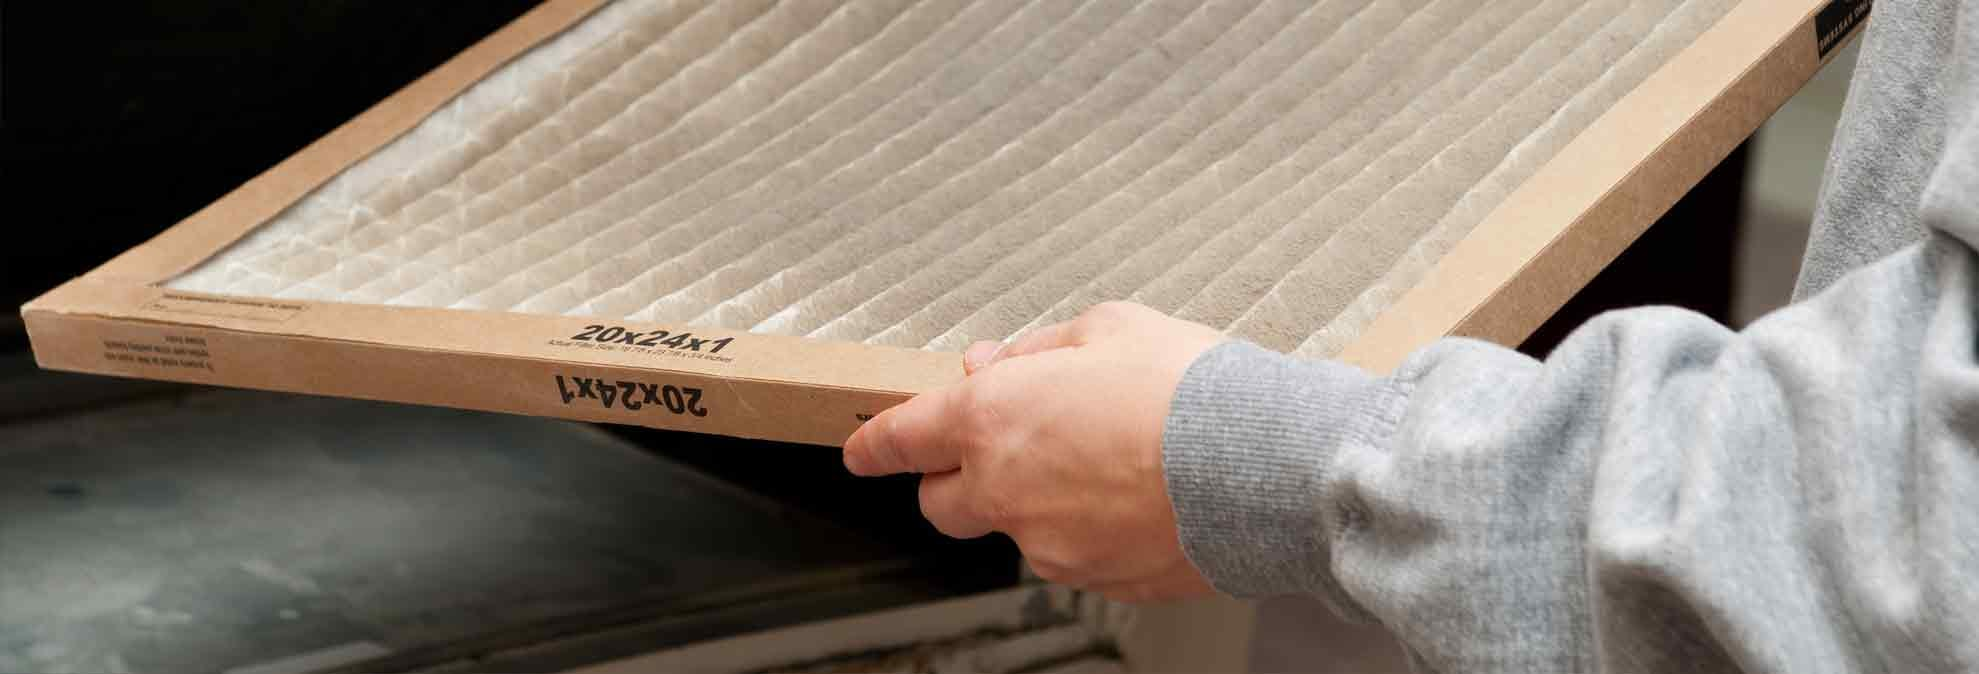 Best furnace air filters for allergies - Best Furnace Air Filters For Allergies 56